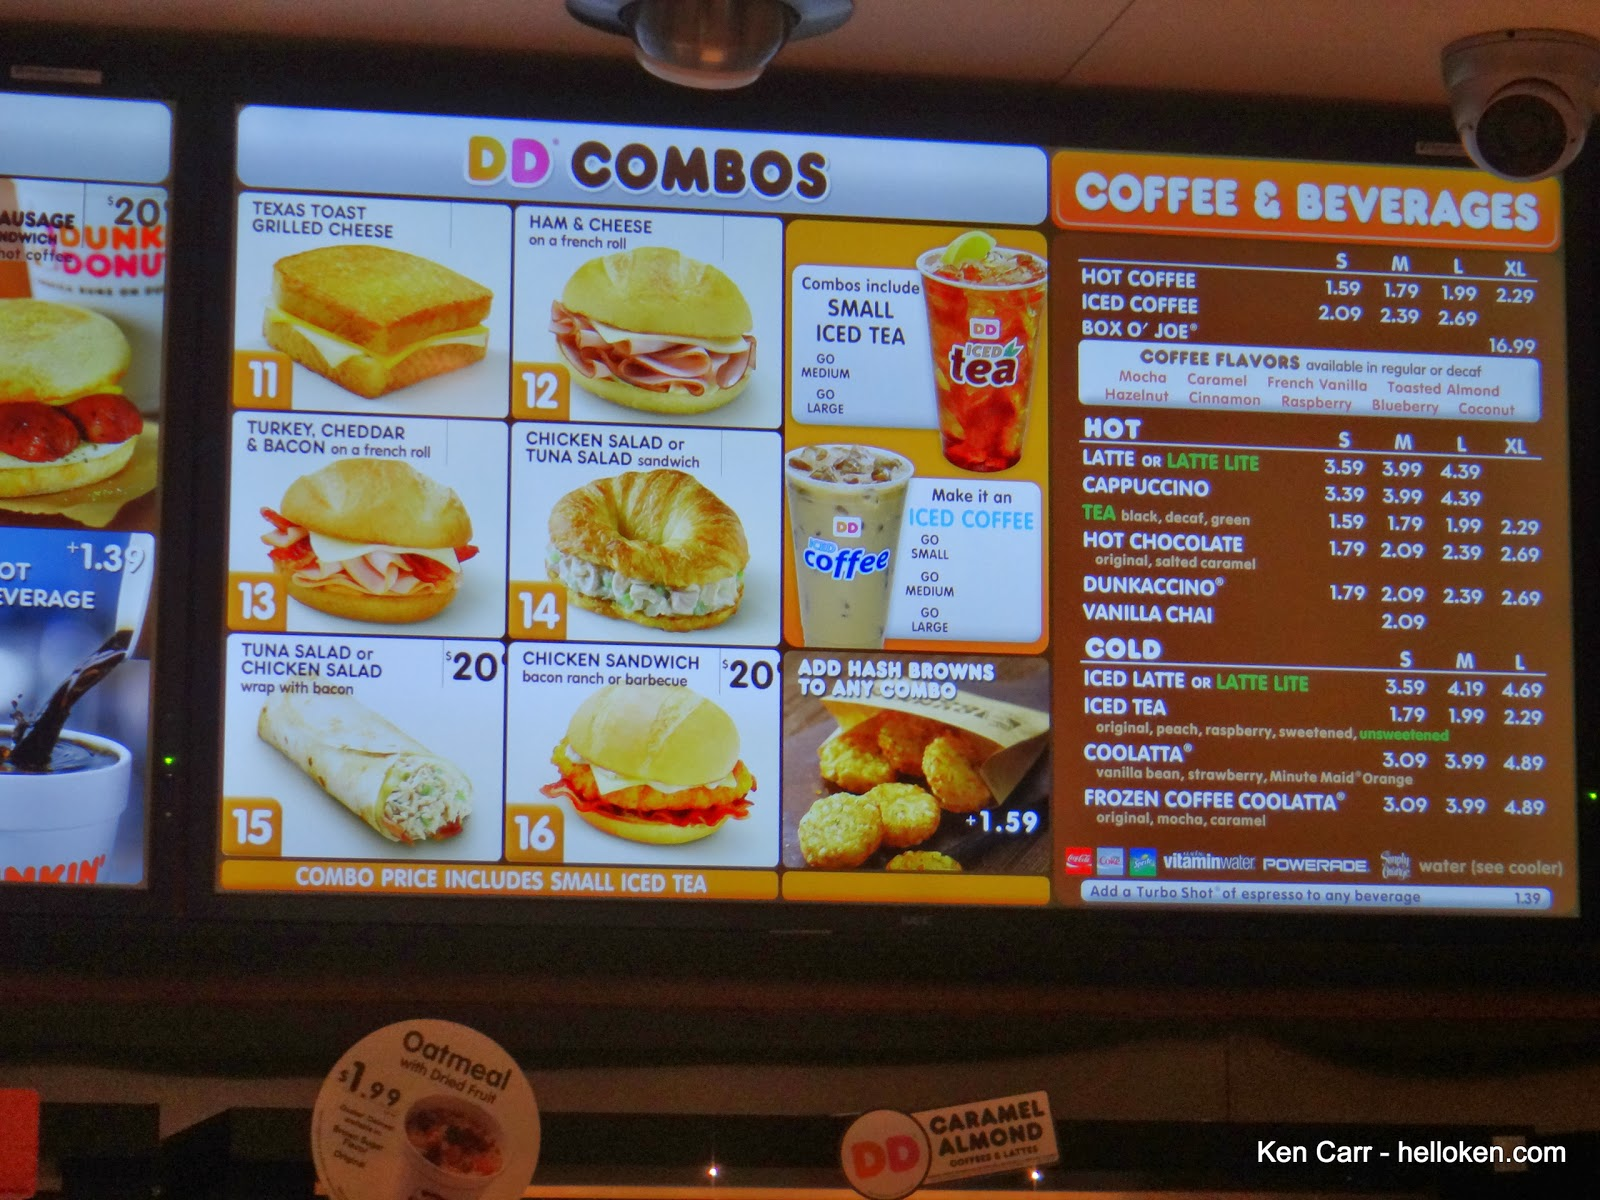 dunkin donuts fixed cost 307 reviews of duck donuts lucky that we were here during a non busy time toughest part is parking, because it seems people park here and walk the boardwalk a little confusing to order in one building on the left and pickup in another on the.